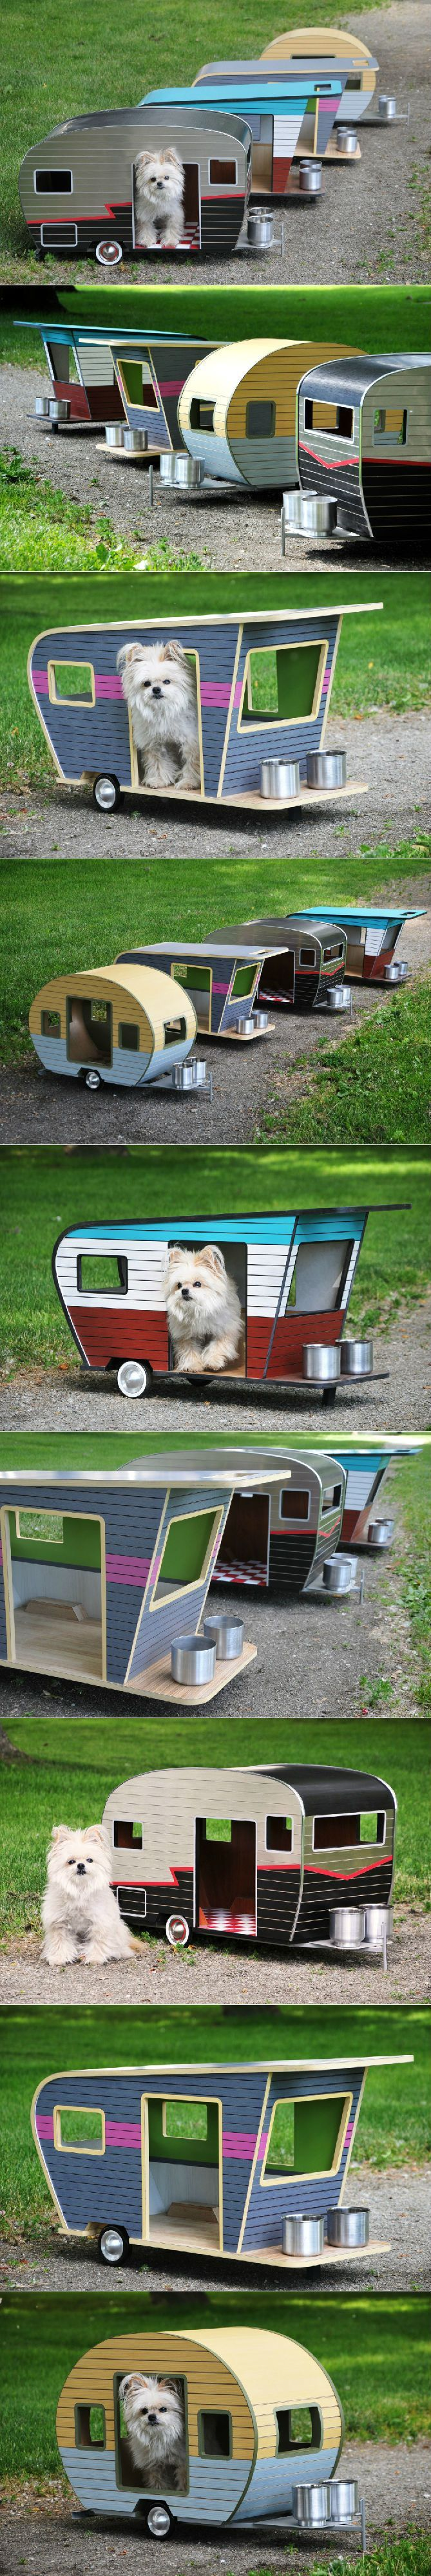 Instantly-Endearing Pet Trailer Designs.  Pet trailer can even have a lighted interior, wireless speakers, and an adorable personalized license plate. Barrington Oaks Veterinary Hospital- http://bovh.com/